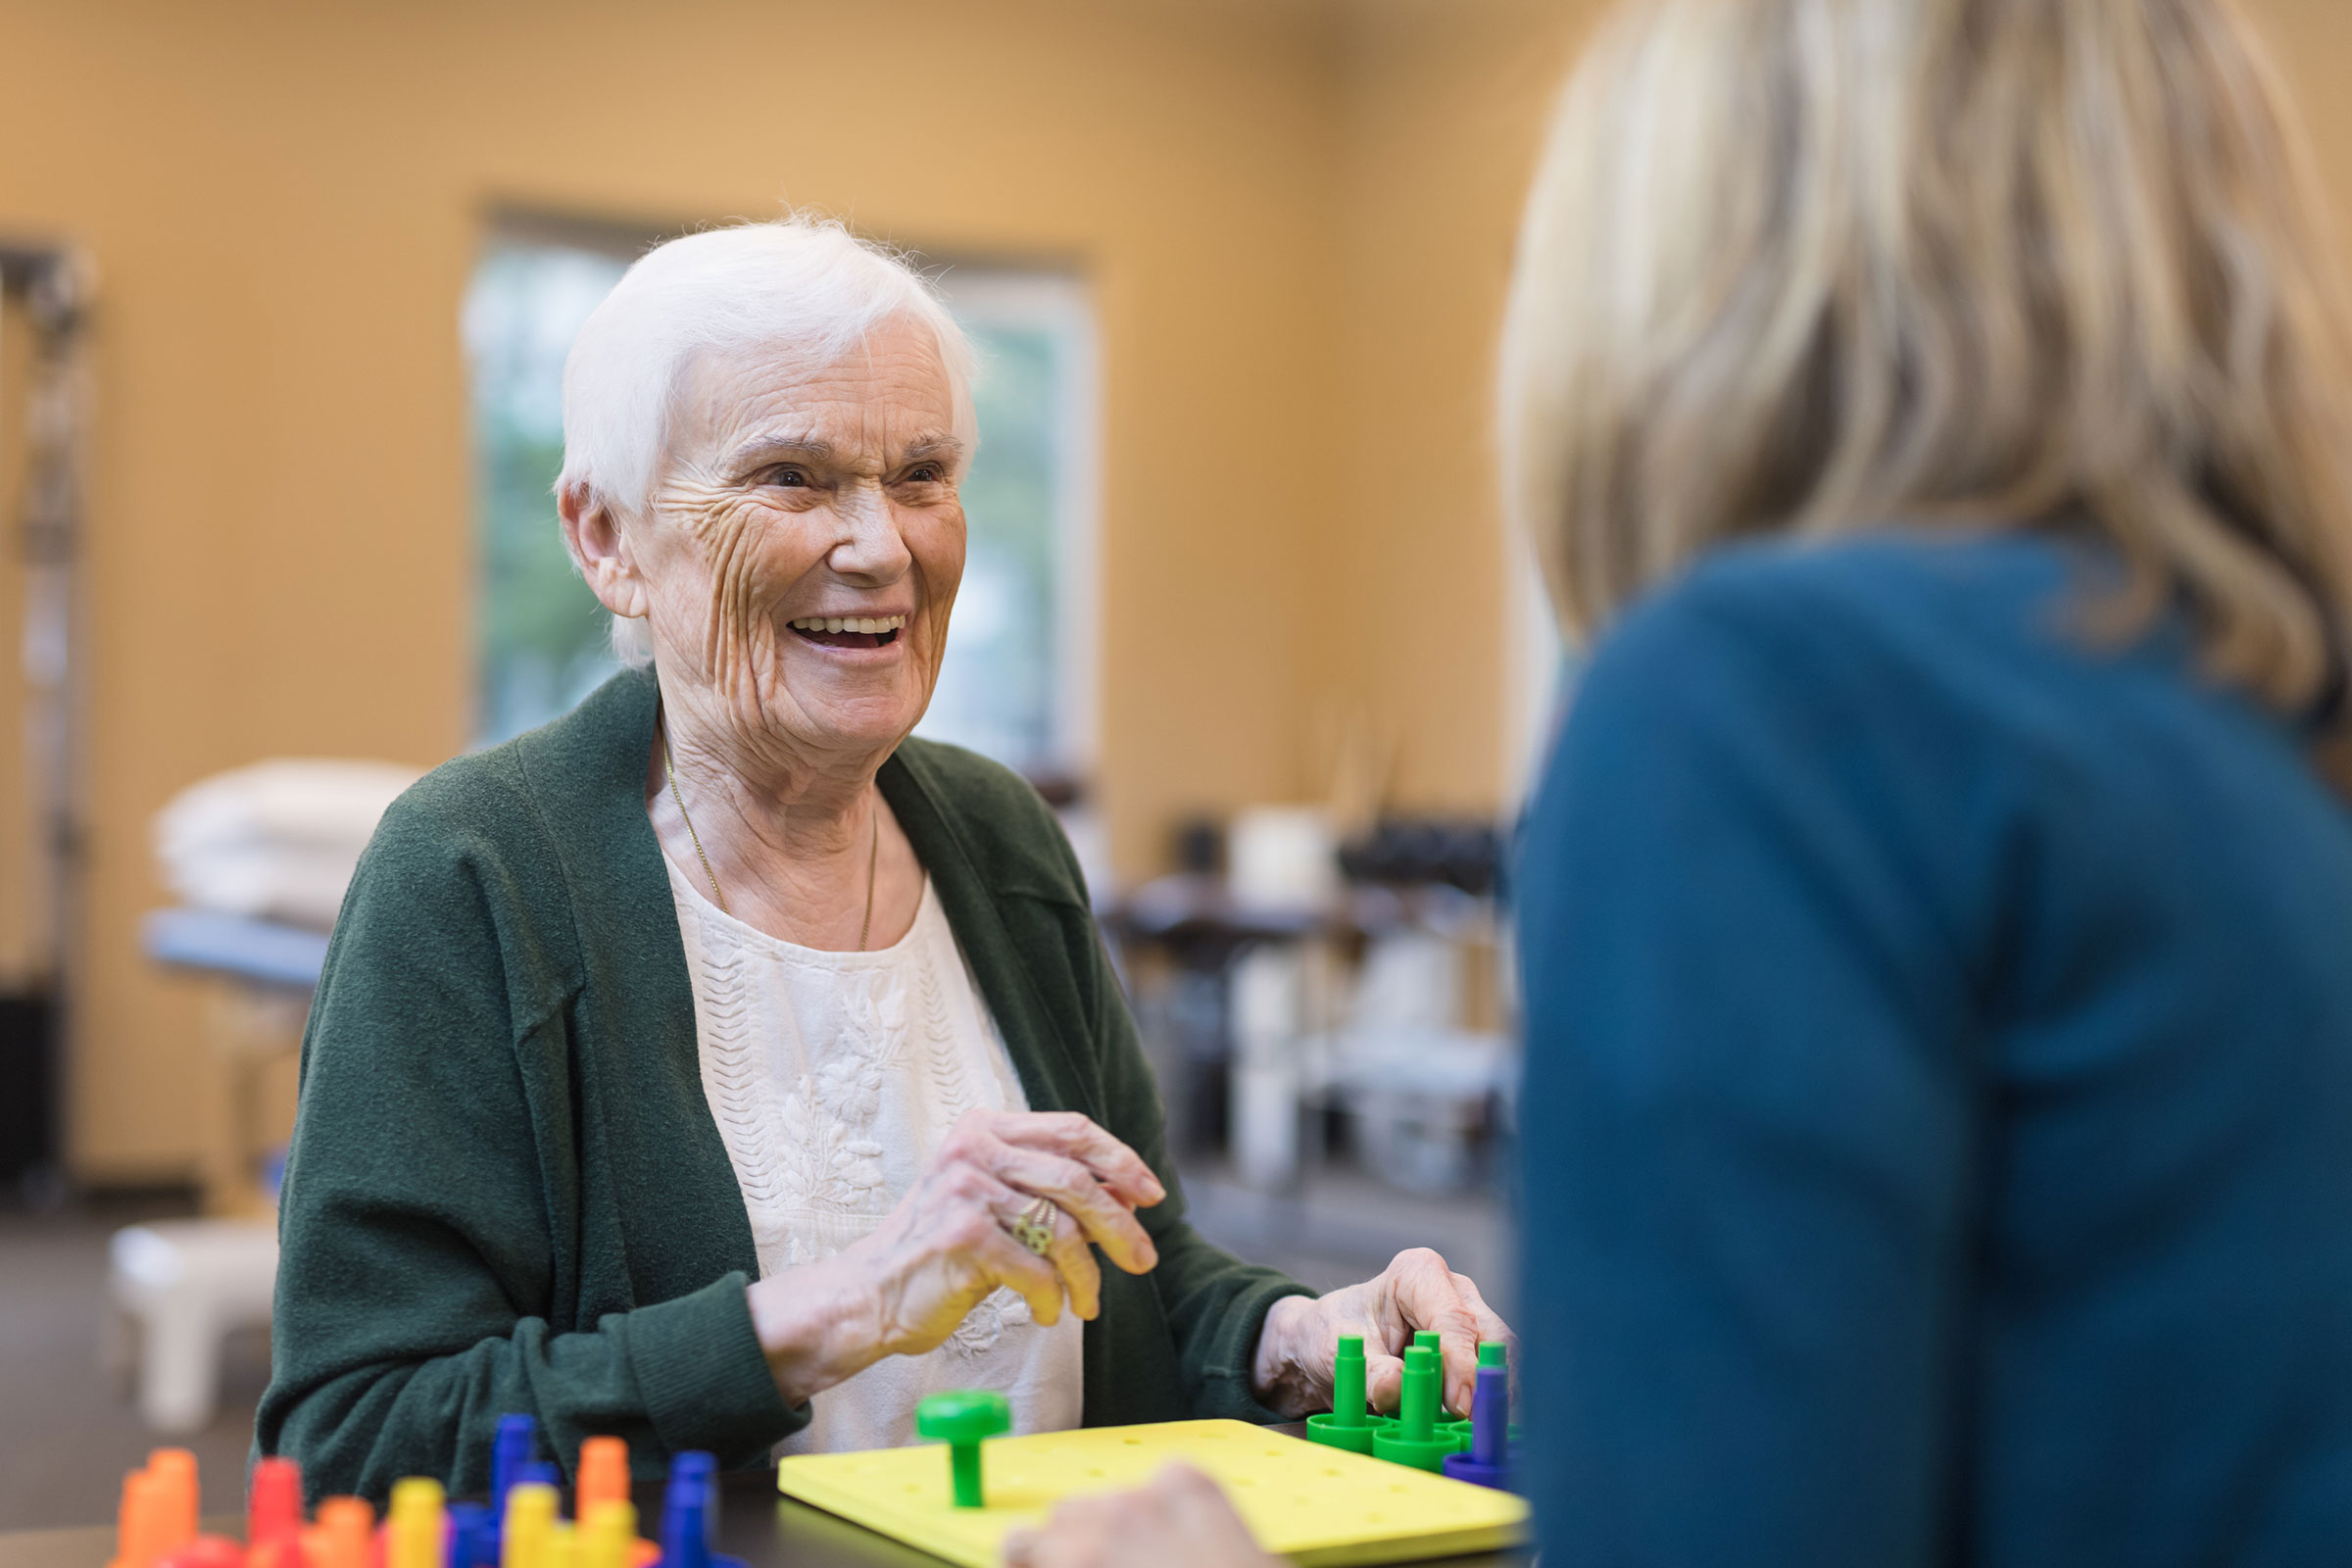 A senior smiling female doing occupational therapy by placing pegs into a board while looking at a female therapist dressed in blue